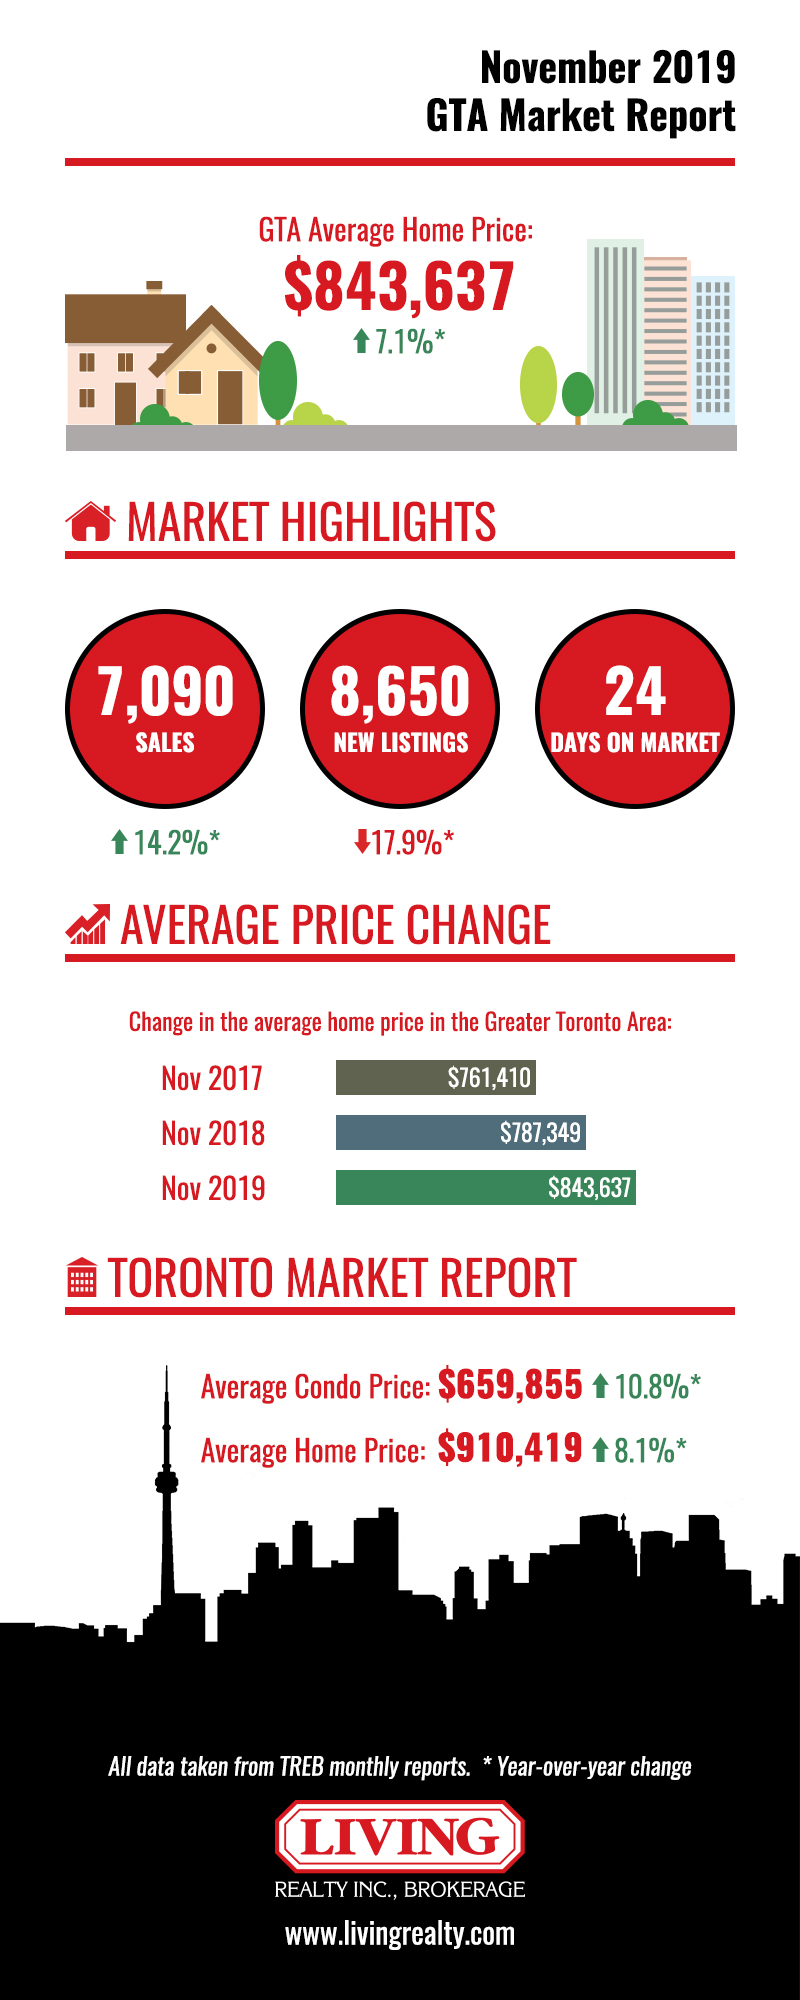 November 2019 GTA housing market report graph